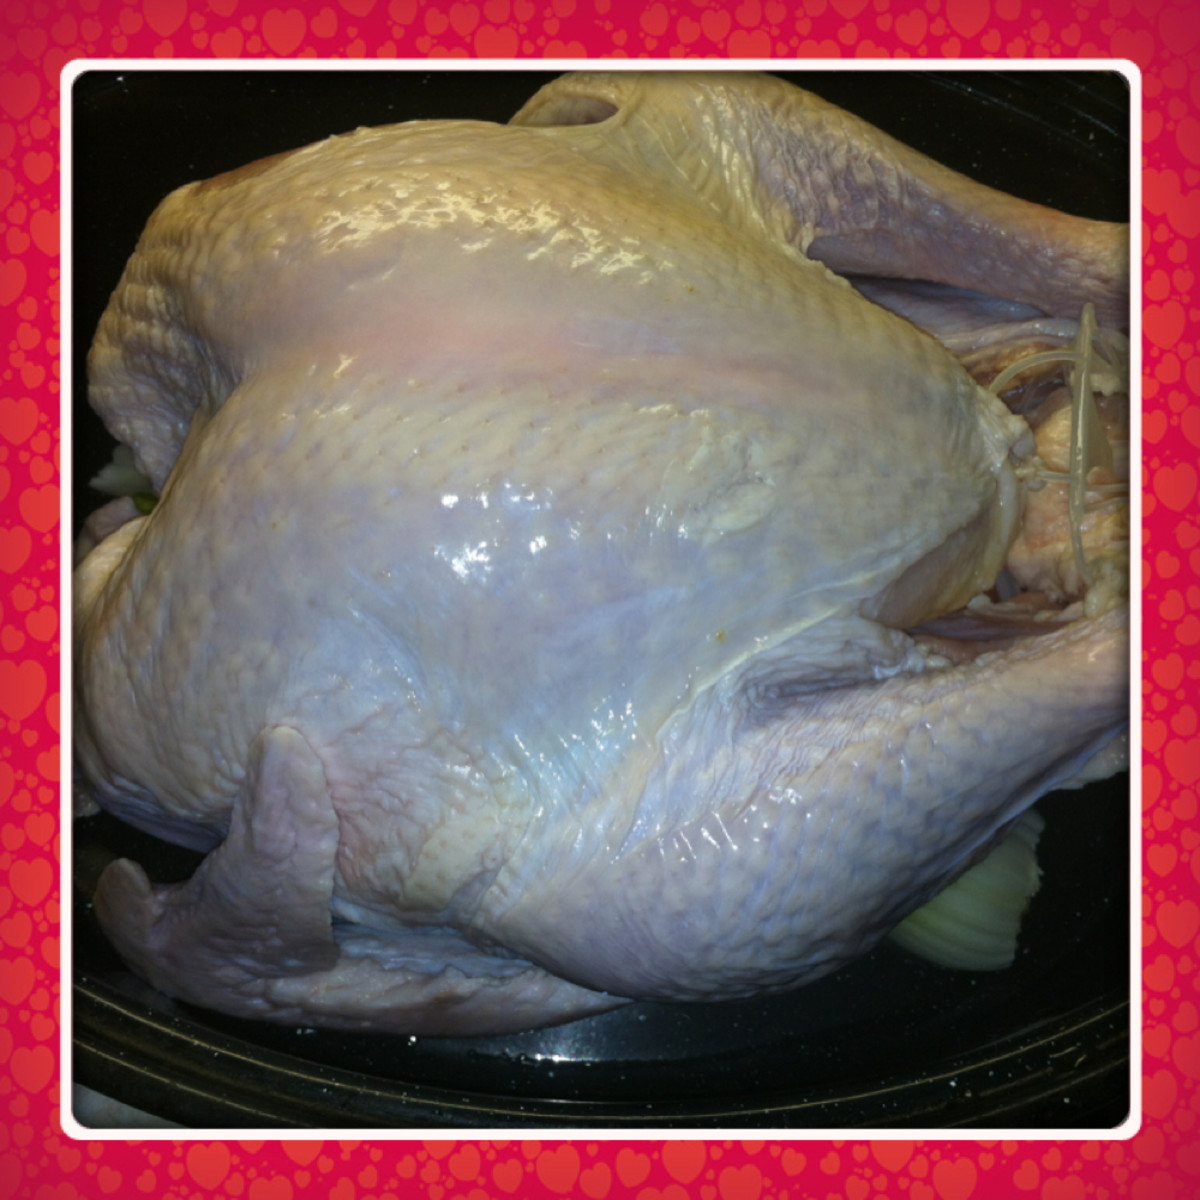 Turkey is now ready to be stuffed.